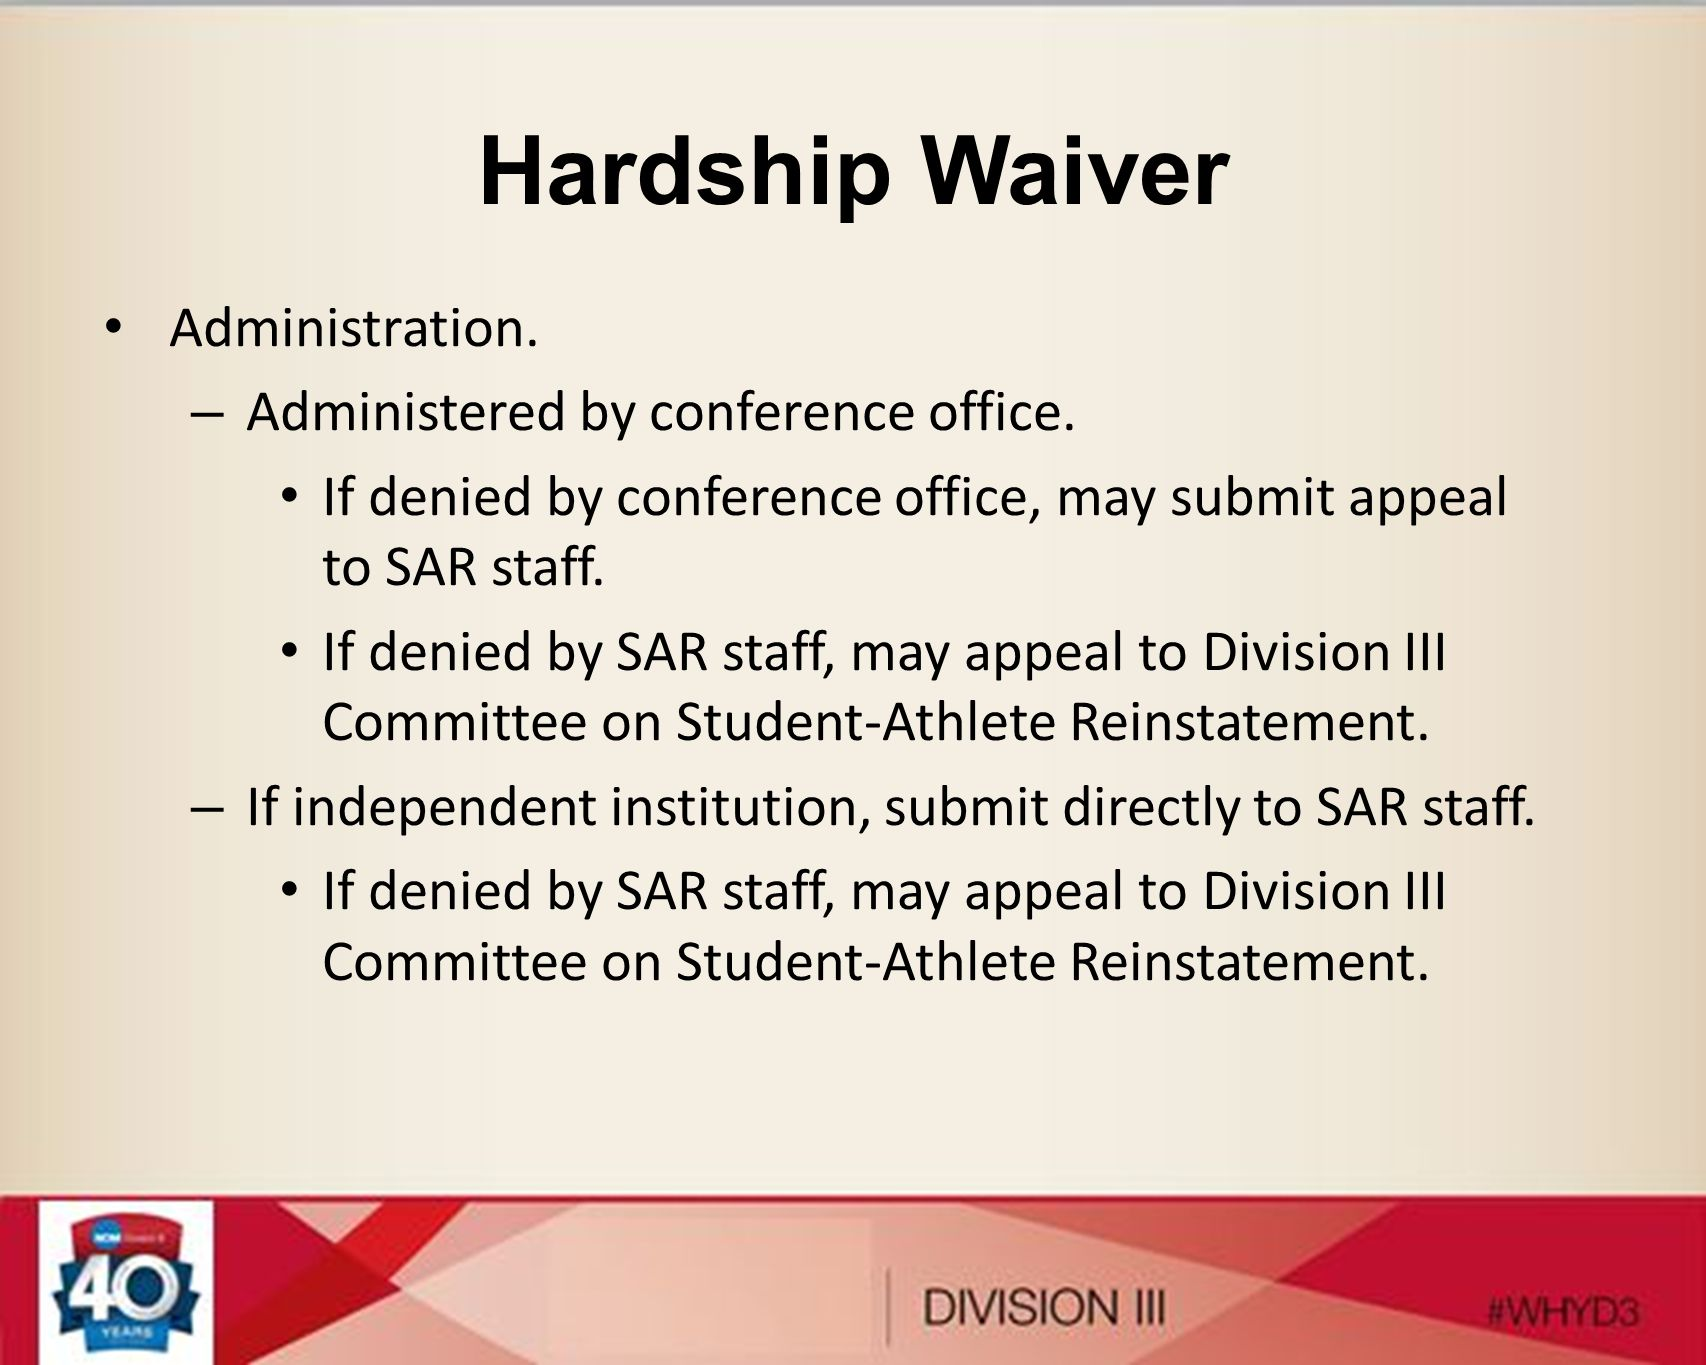 Hardship Waiver Administration. – Administered by conference office. If denied by conference office, may submit appeal to SAR staff. If denied by SAR